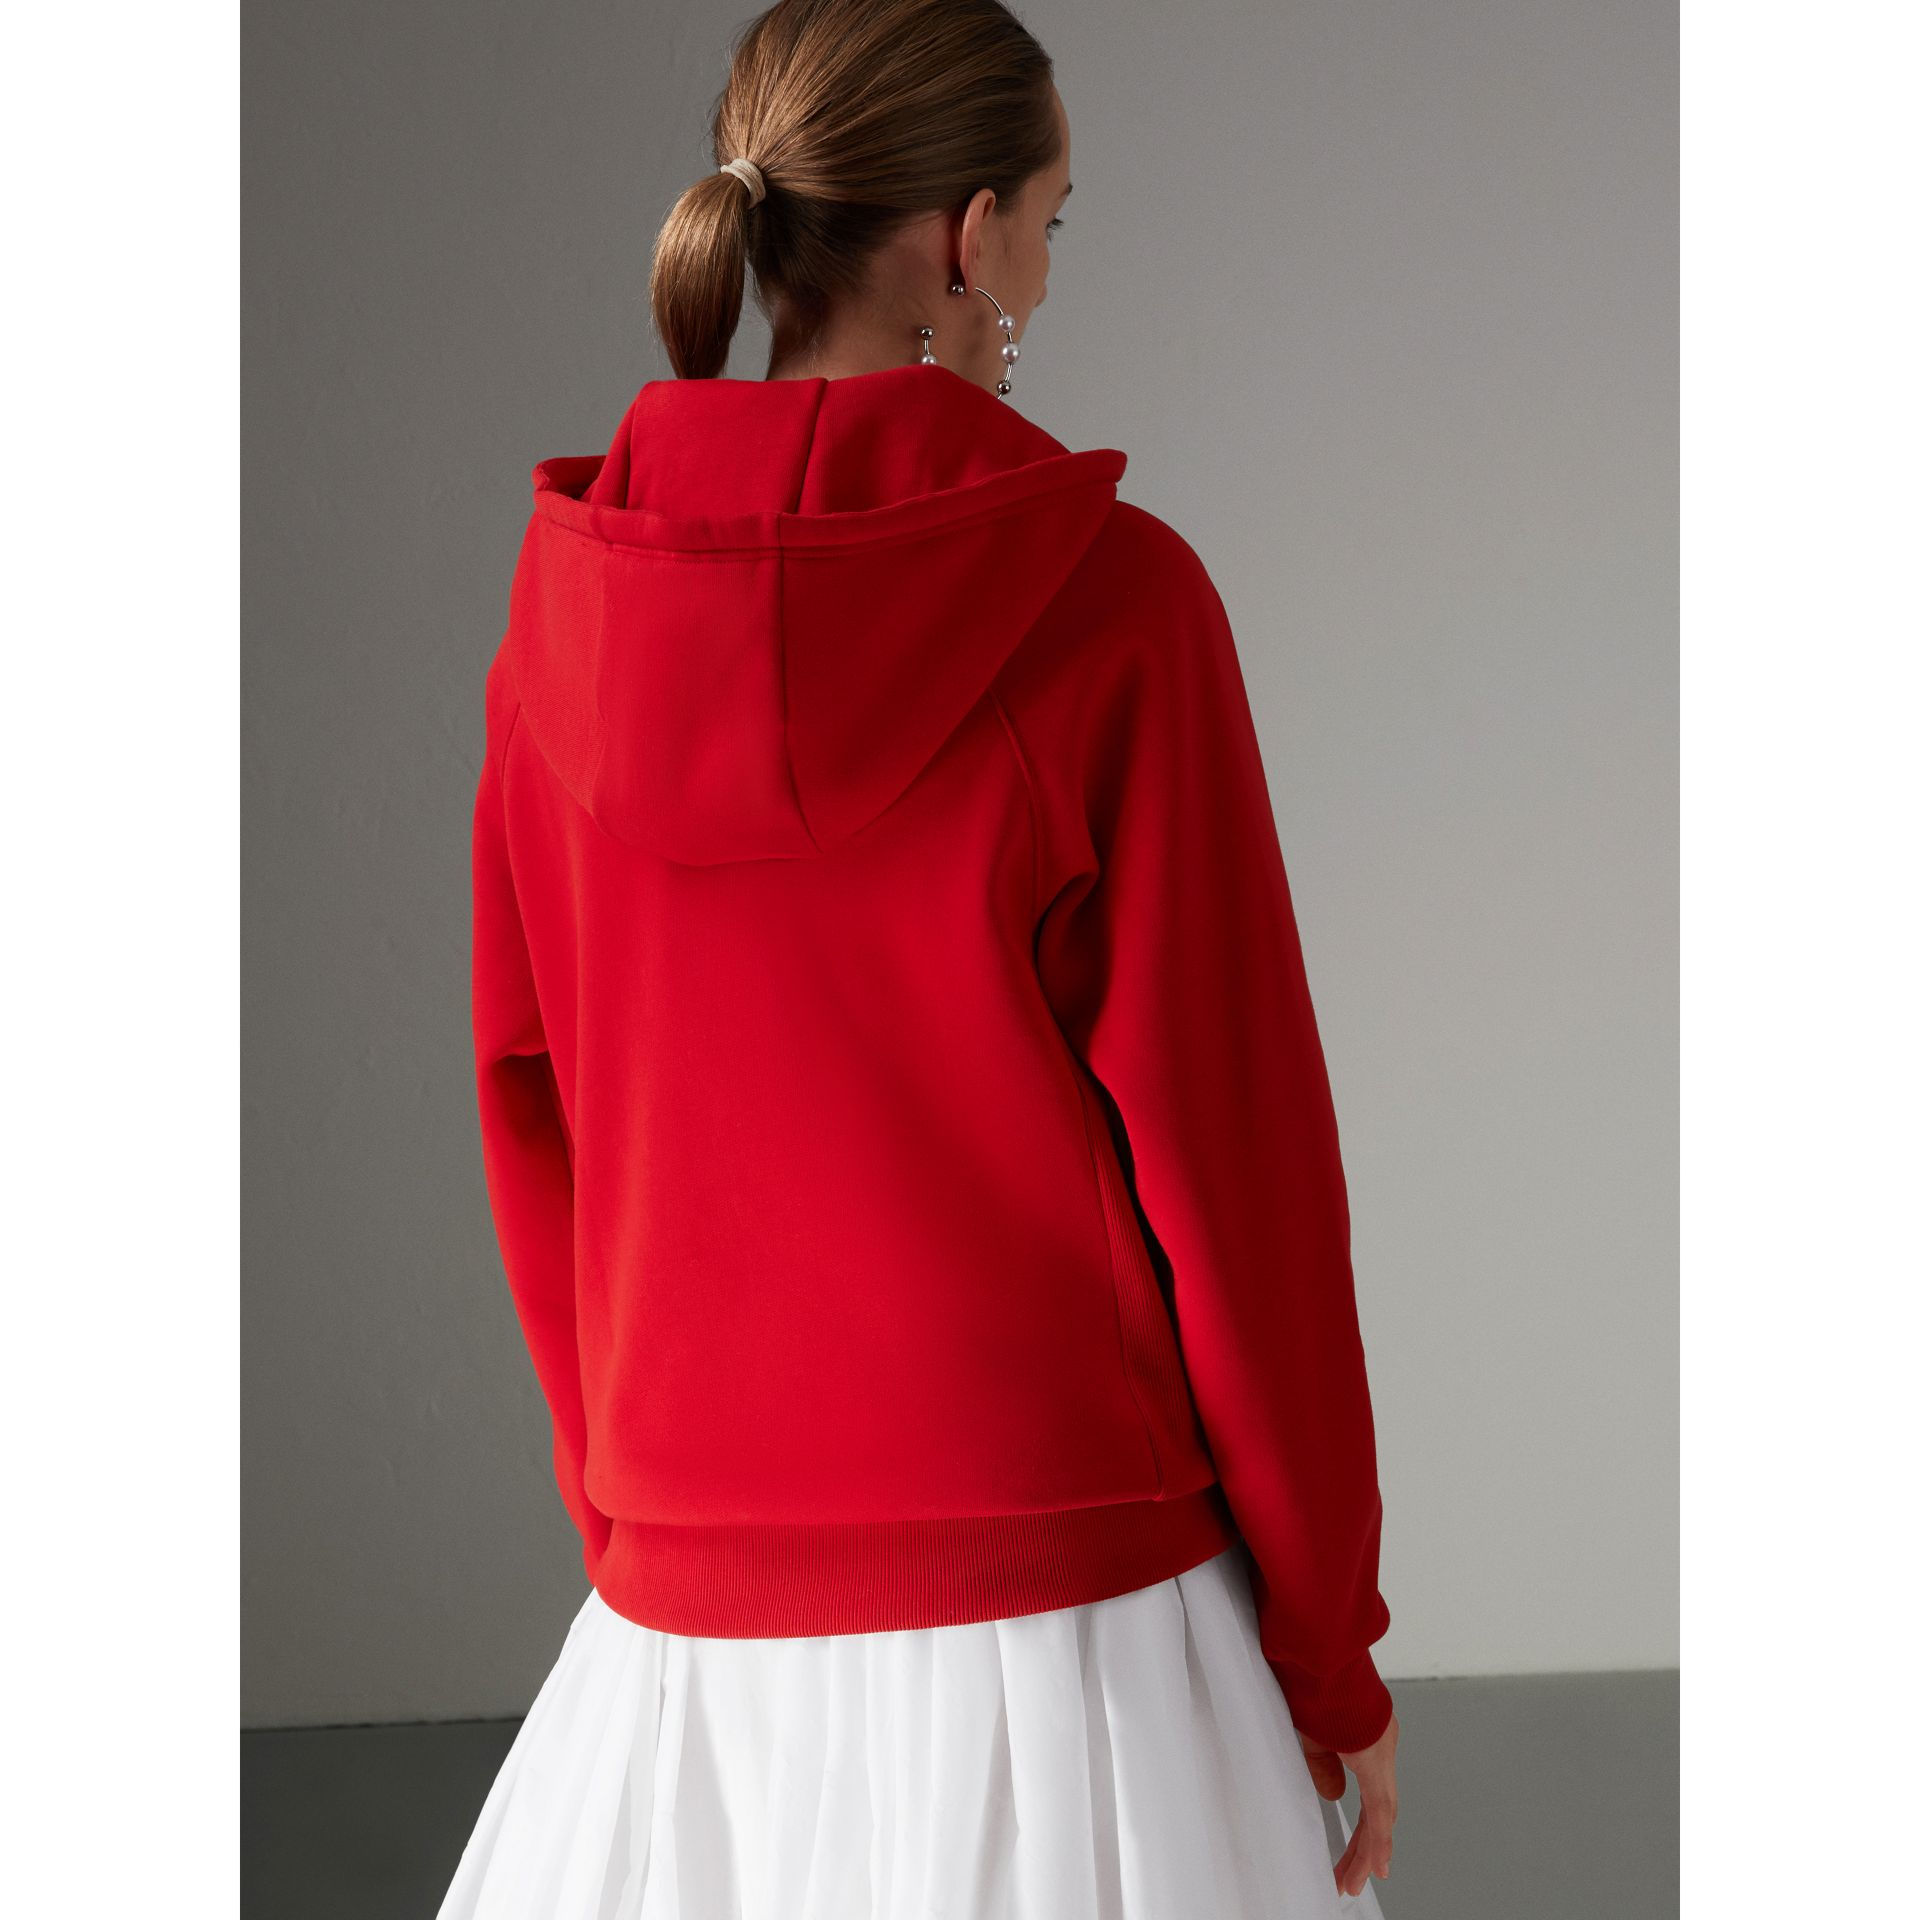 Heart Intarsia Cotton Blend Hoodie in Bright Red - Women | Burberry Singapore - gallery image 2